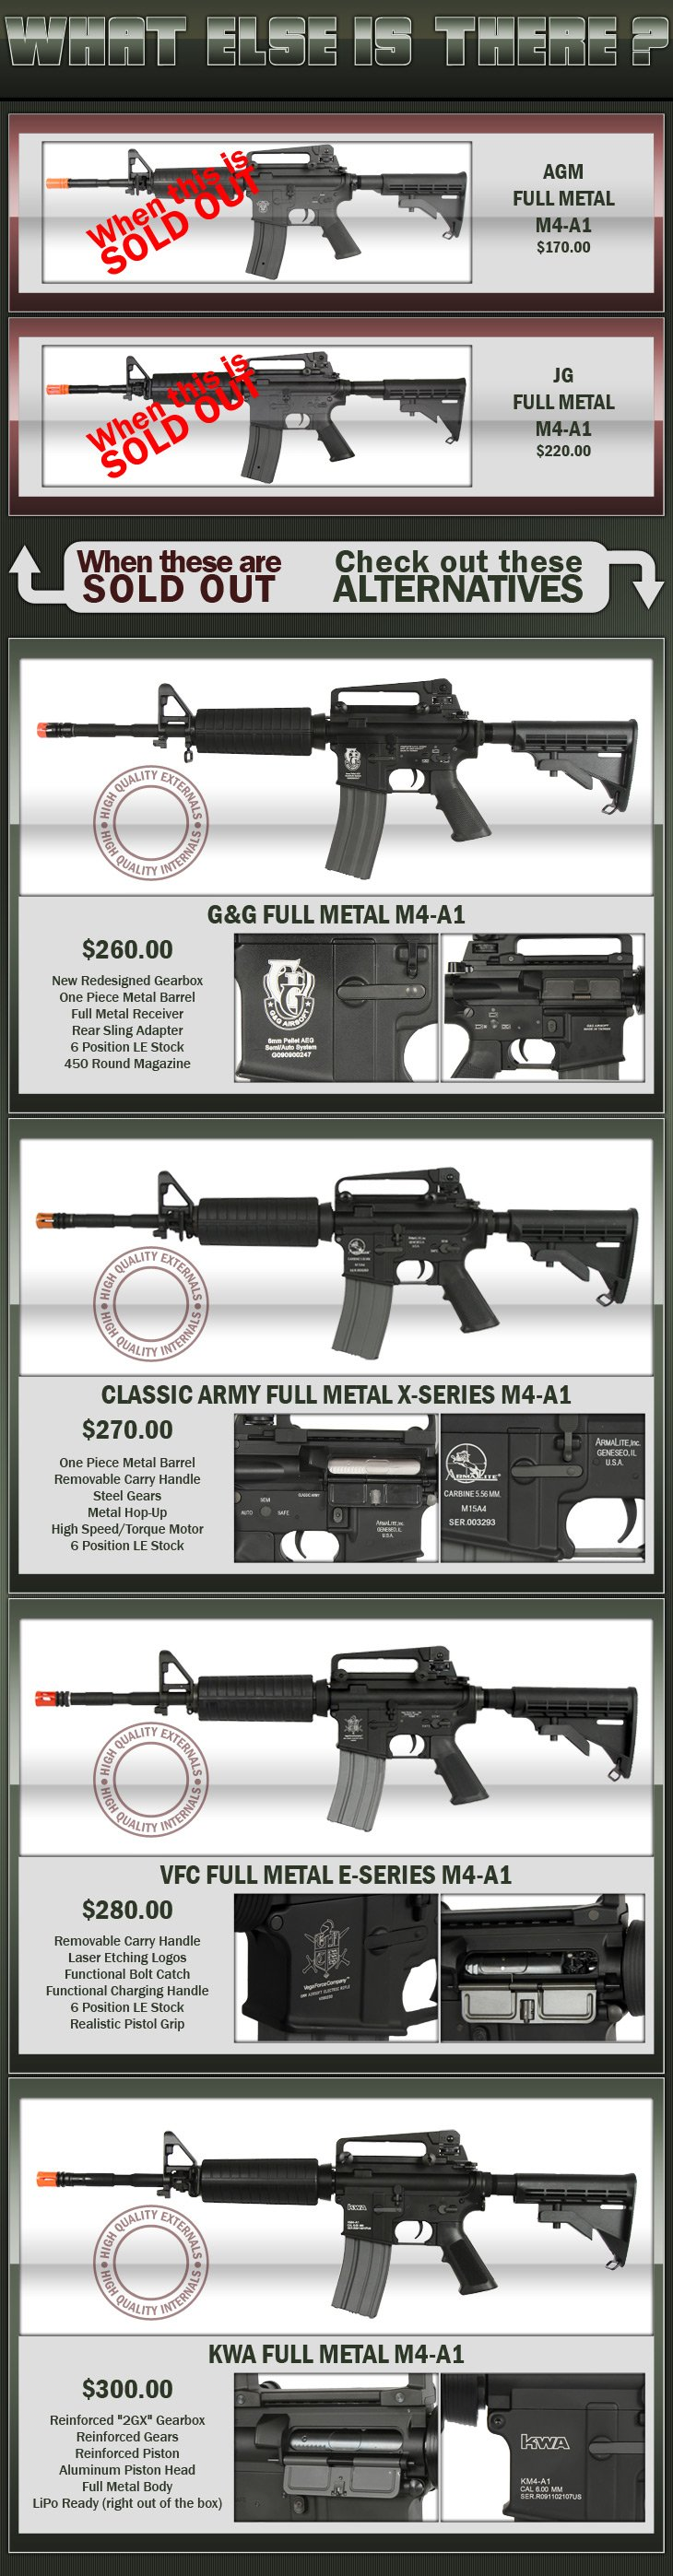 AGM Full Metal M4 Options